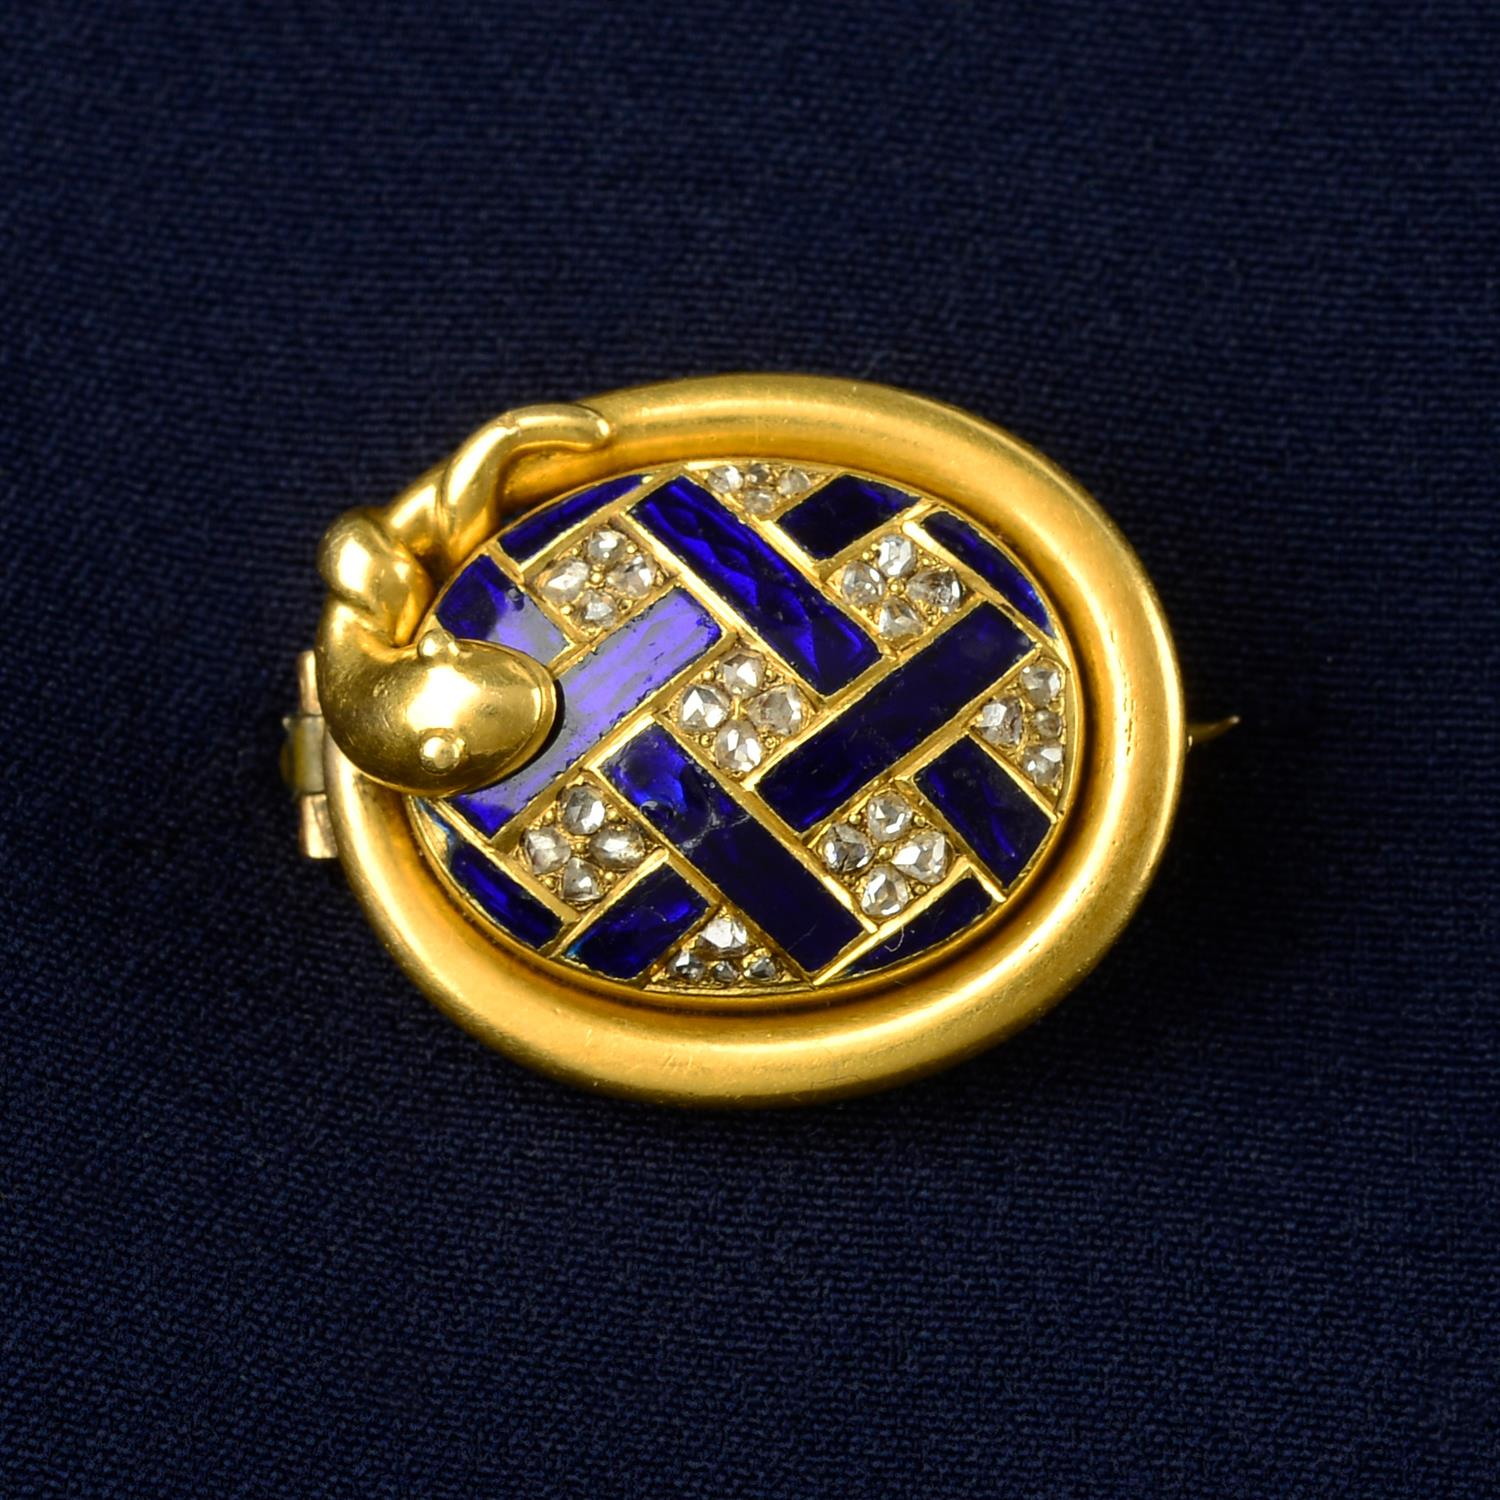 A 19th century gold rose-cut diamond and blue enamel lattice brooch, with snake surround and locket